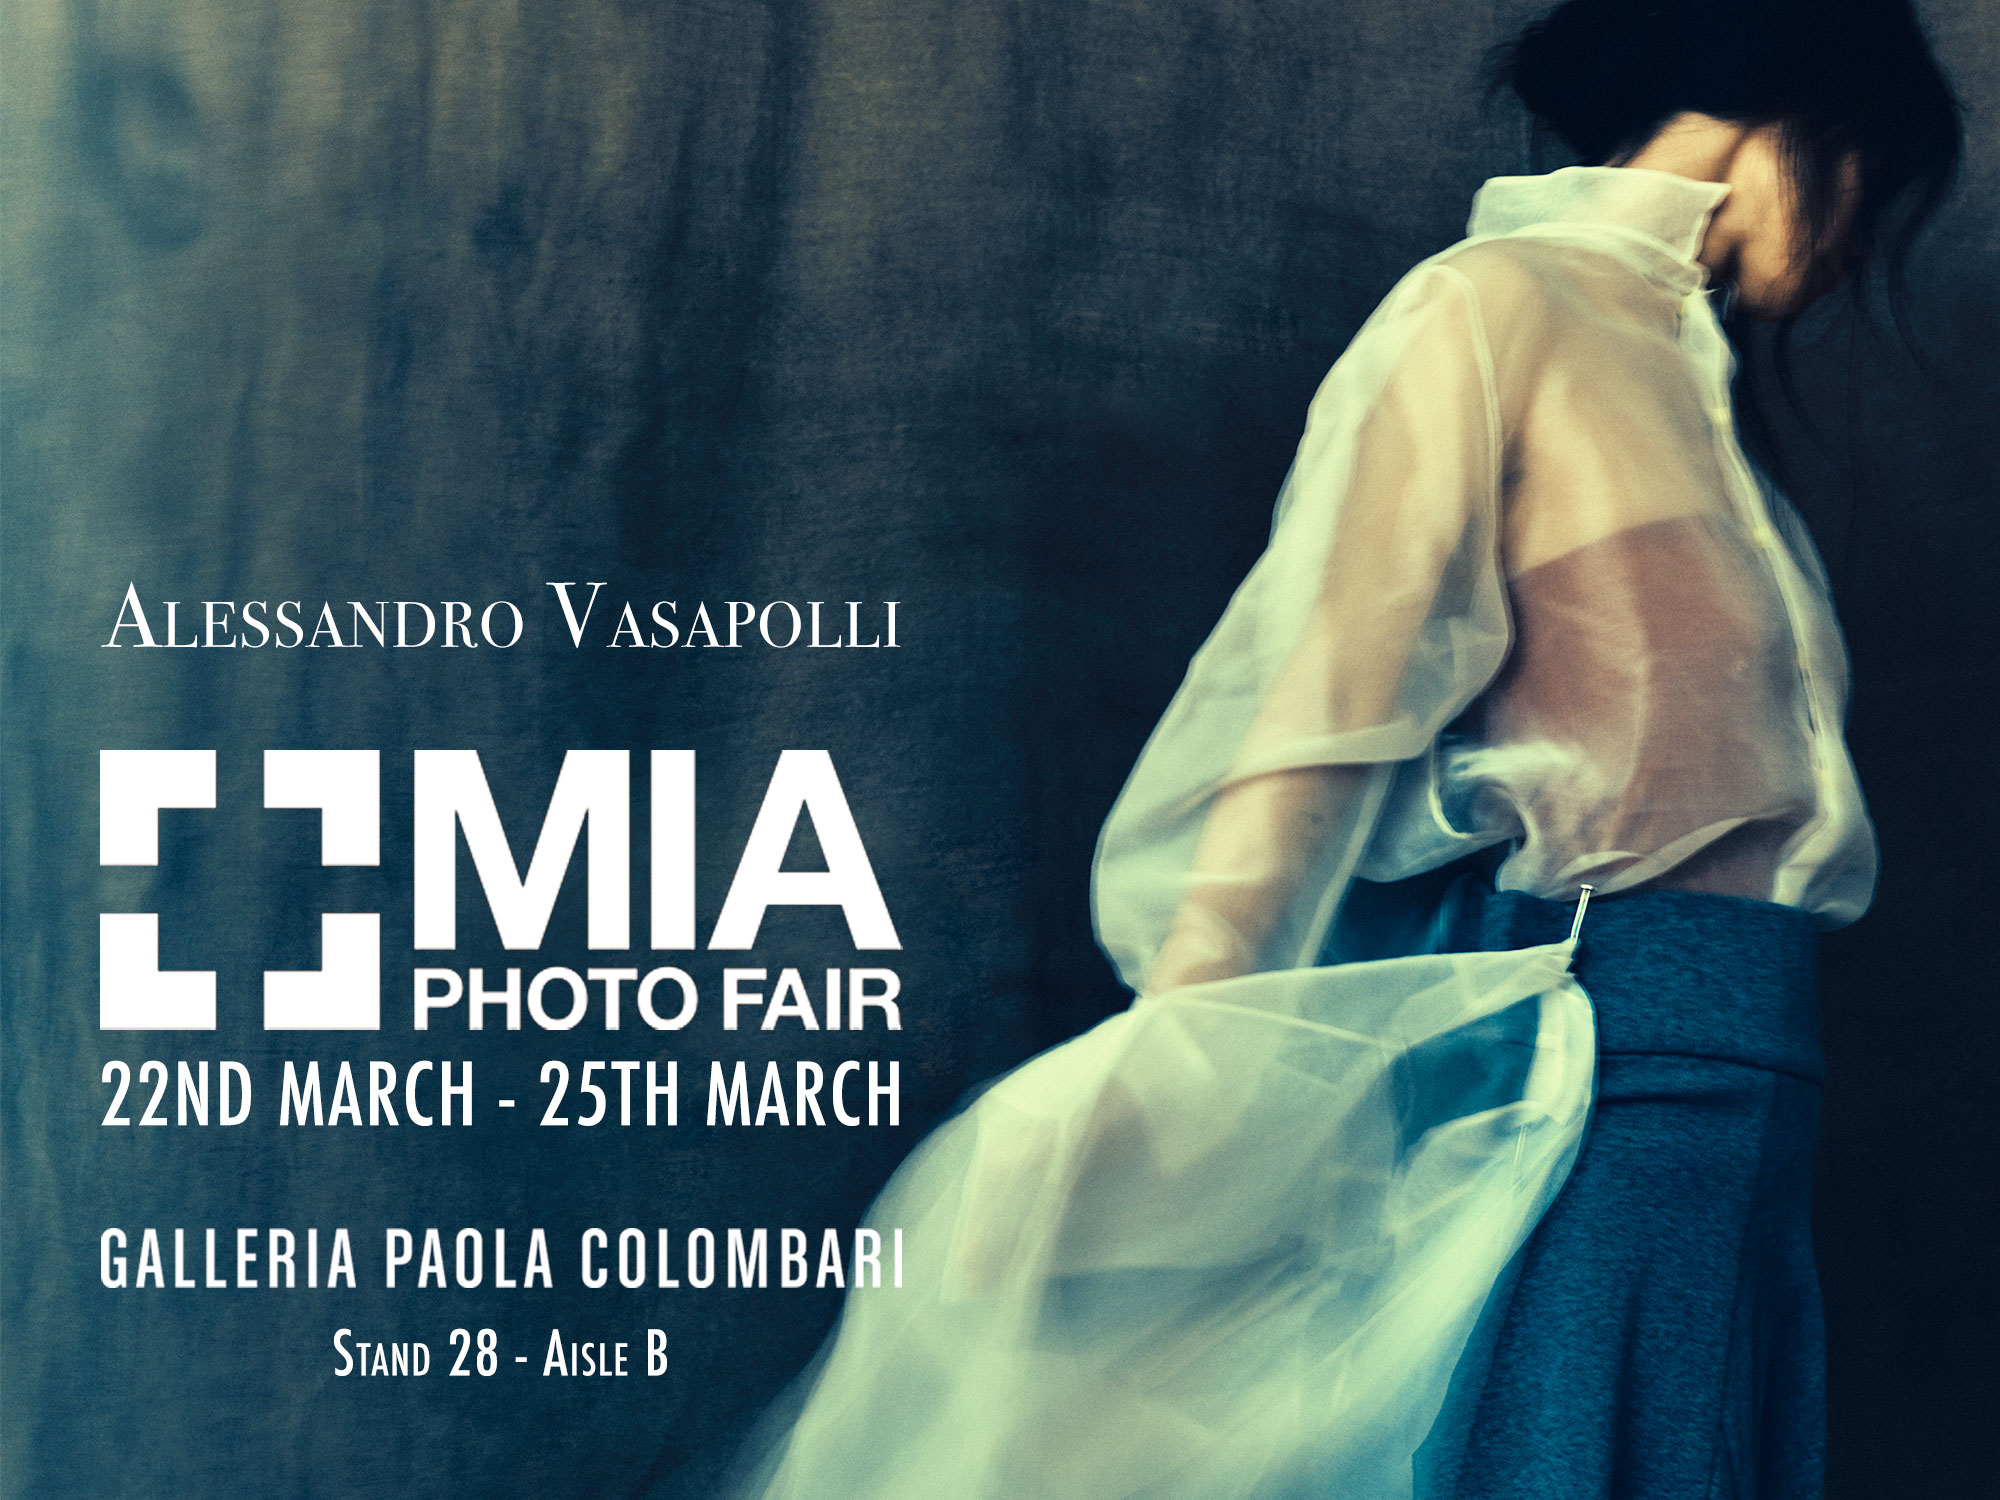 MIA_Photo_Fair_Alessandro_Vasapolli_2019